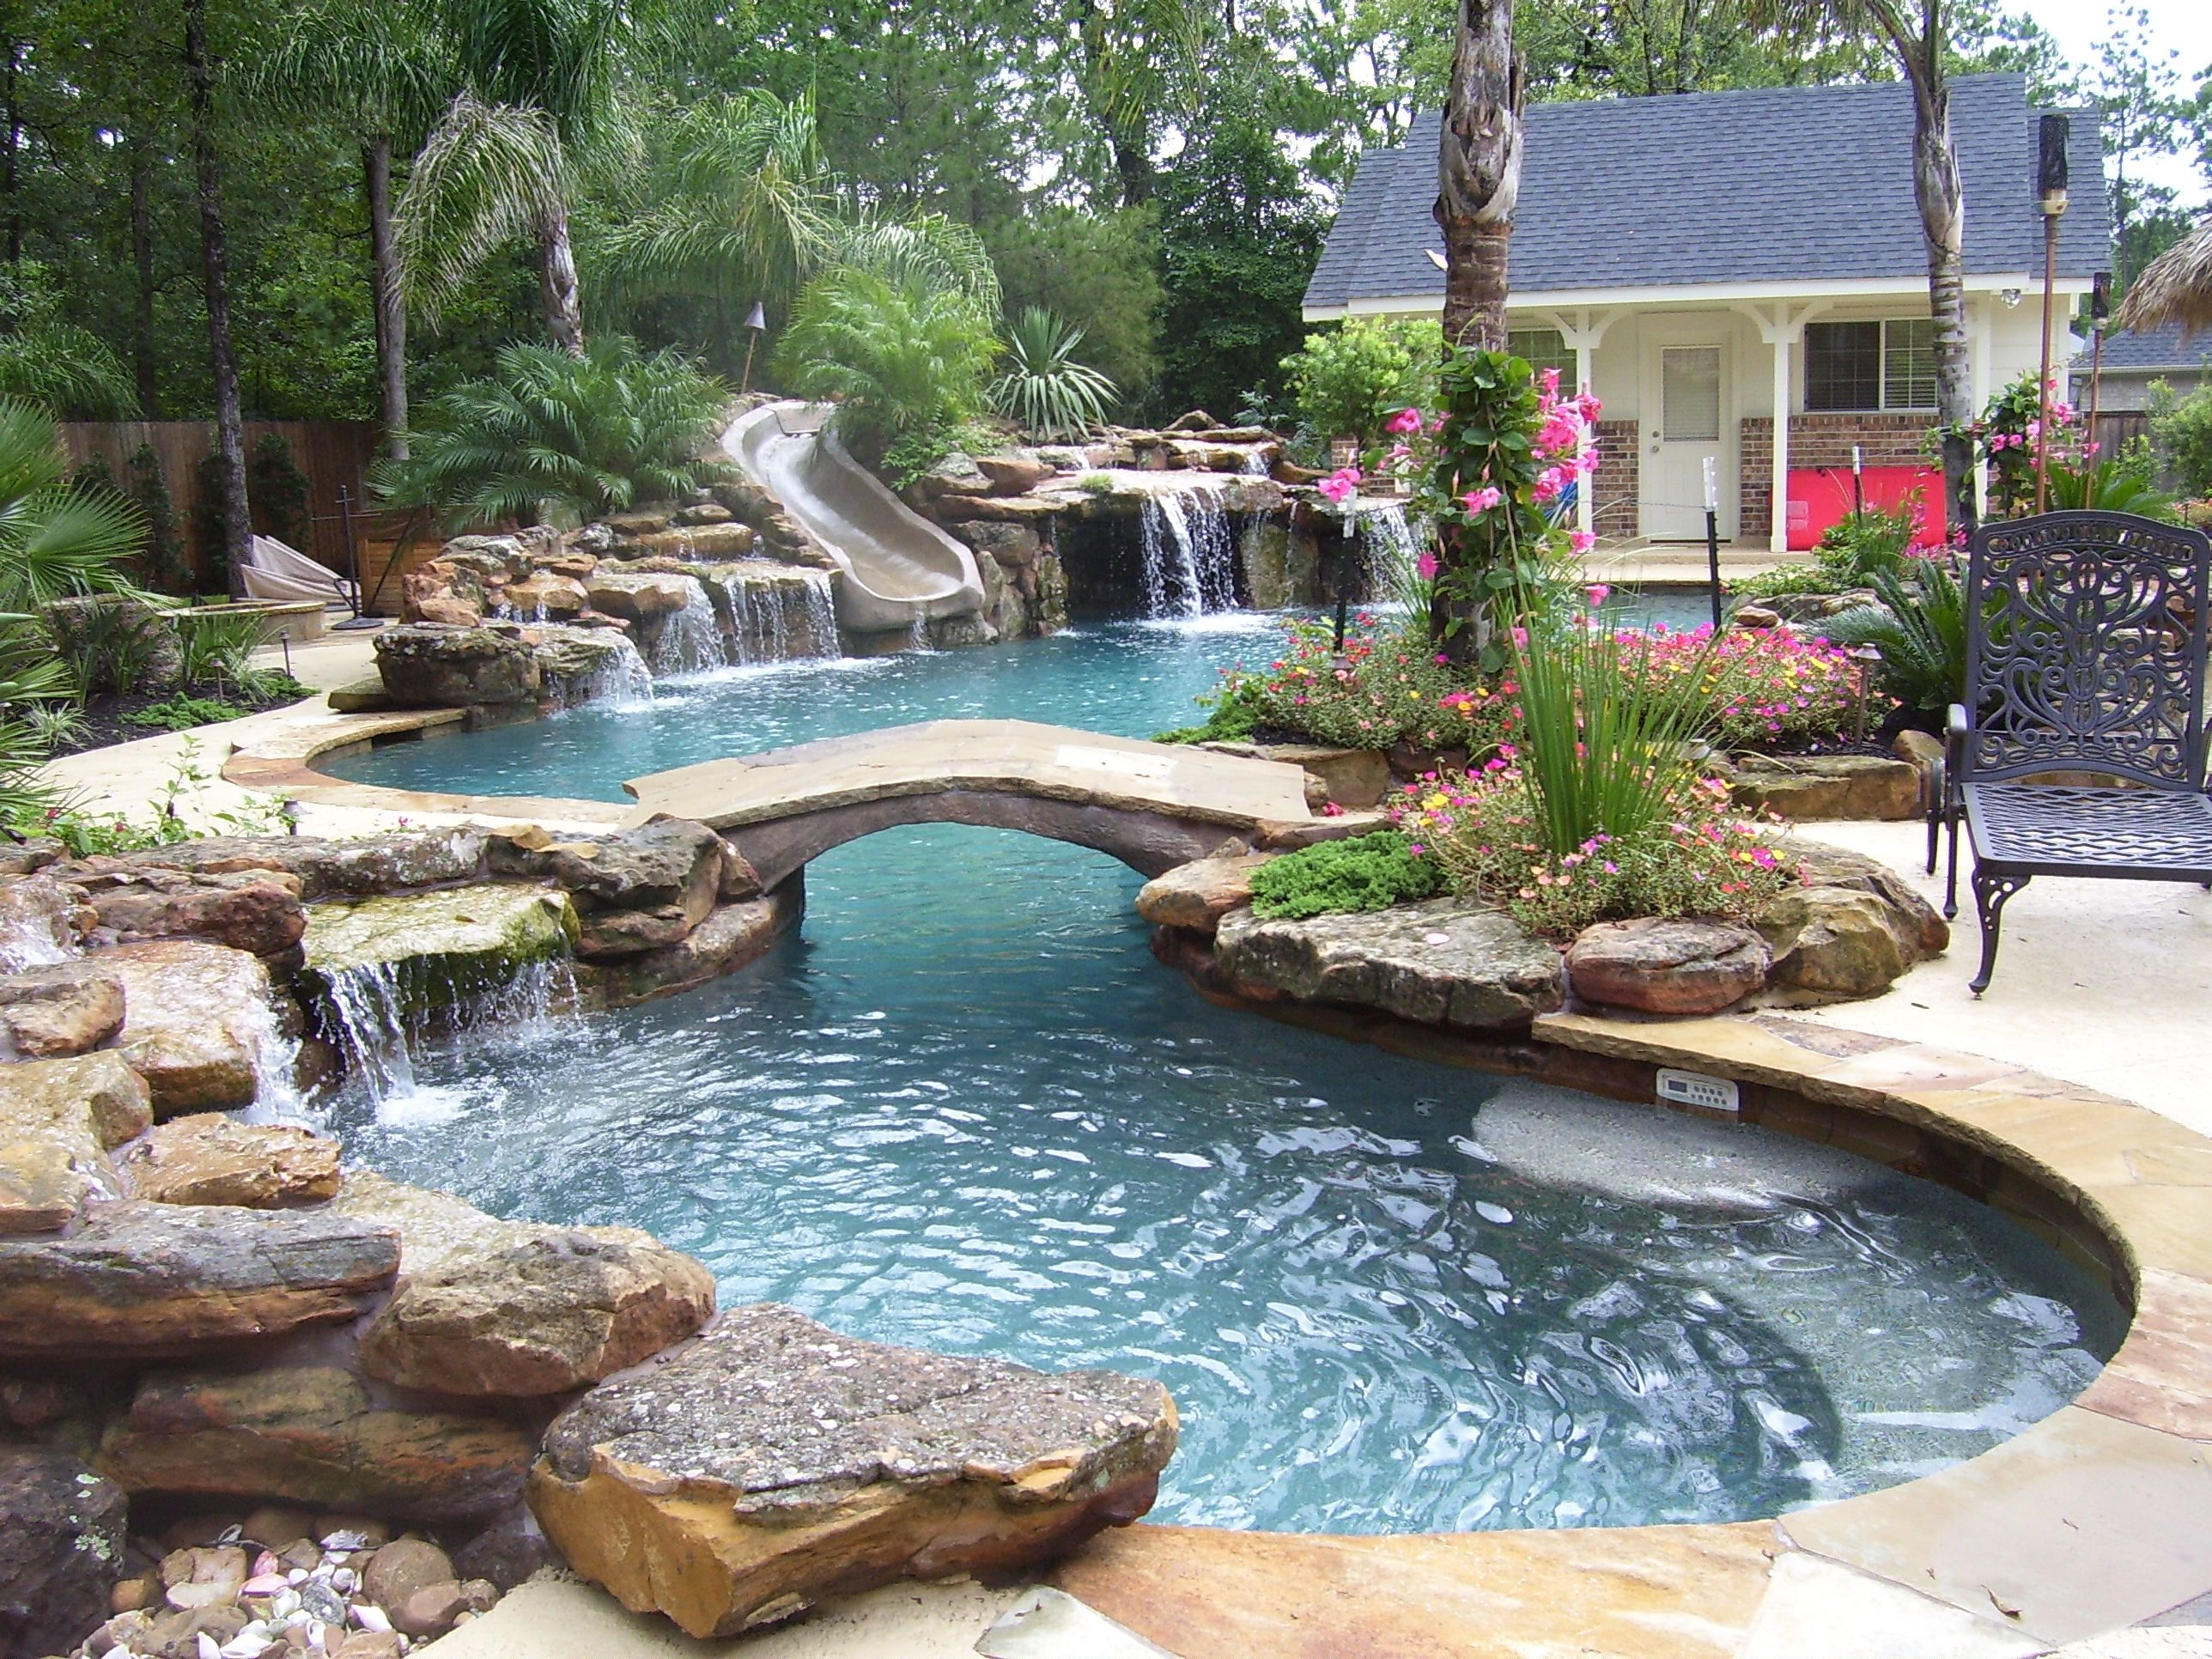 Natural mossrock waterfall pool with slide, beach entry